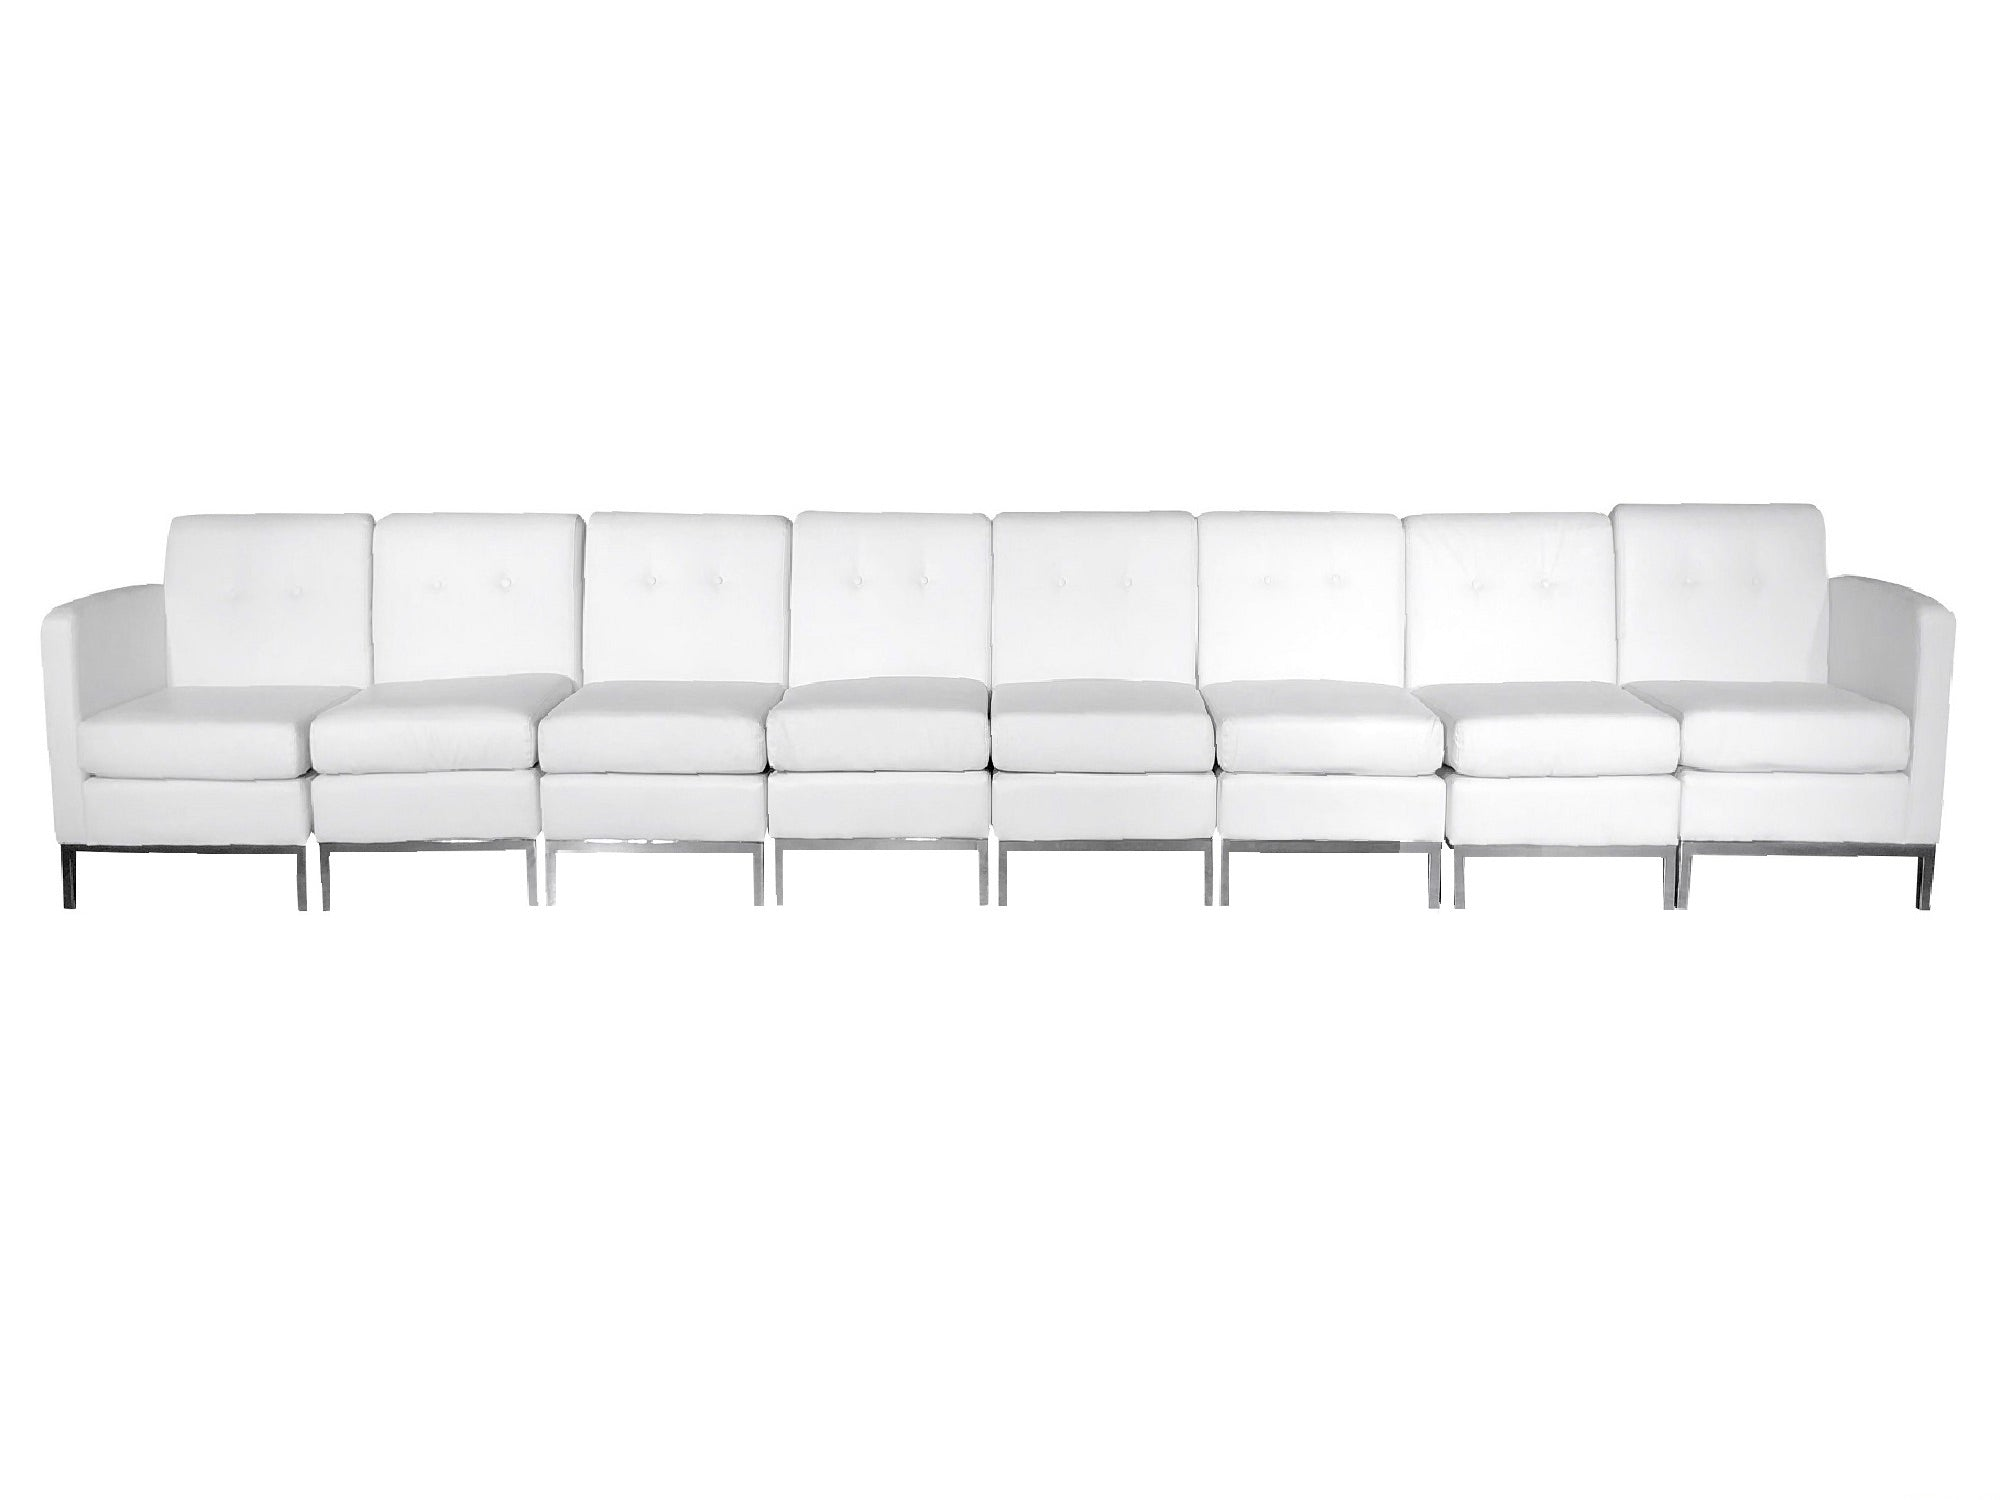 PEACHTREE 8PC LONG SOFA - WHITE